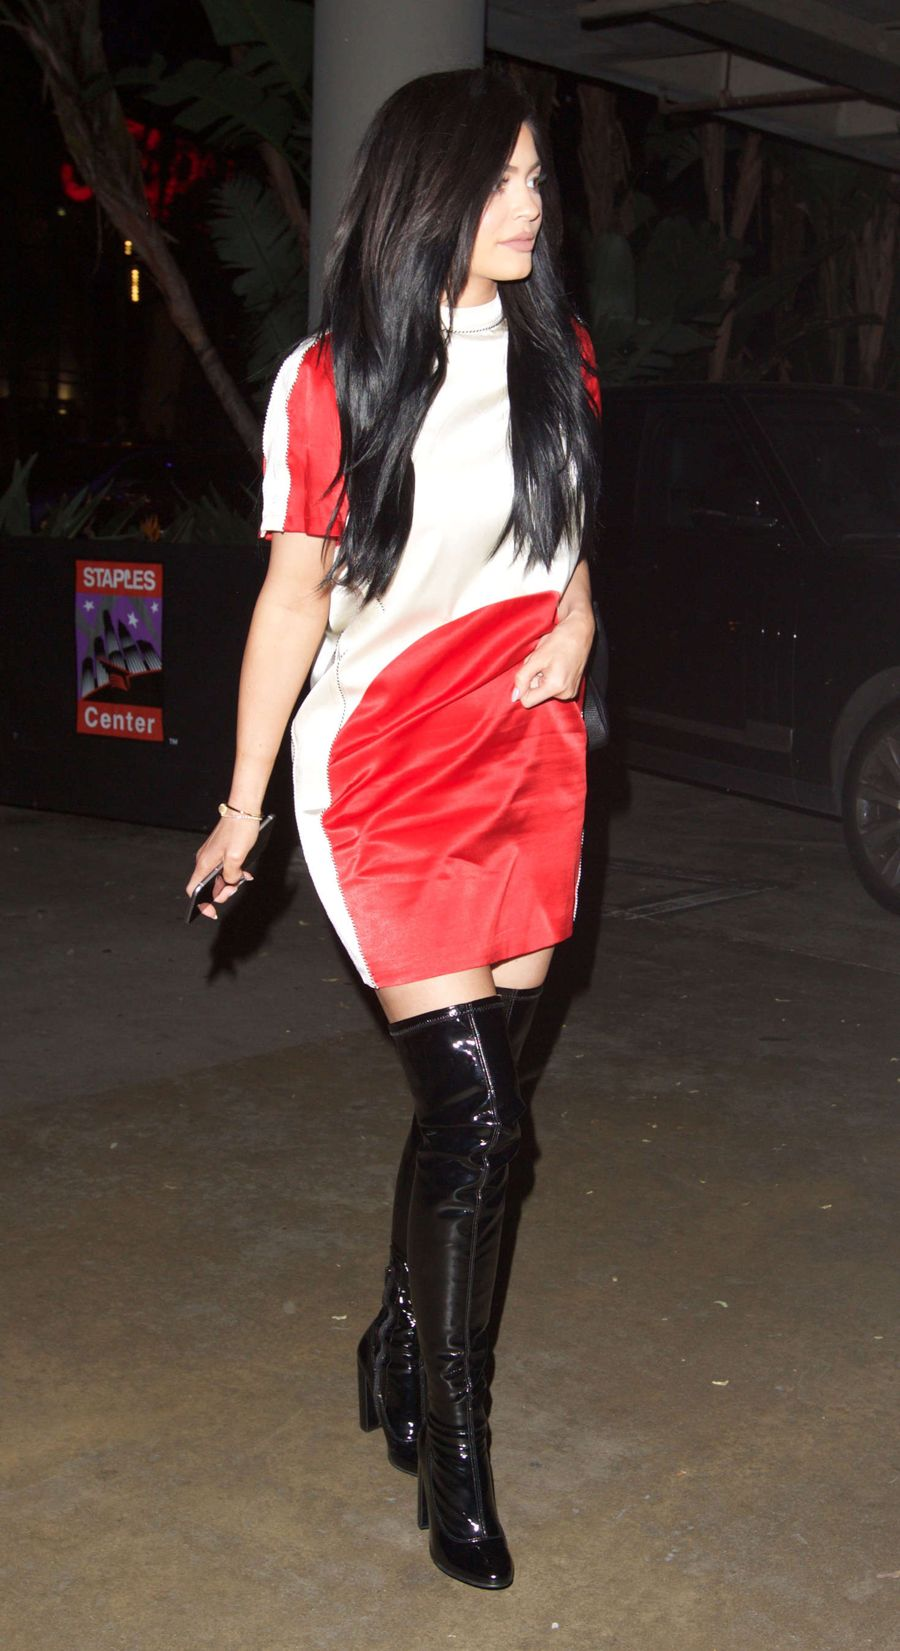 Kylie Jenner - Leaving the Staples Center in Los Angeles